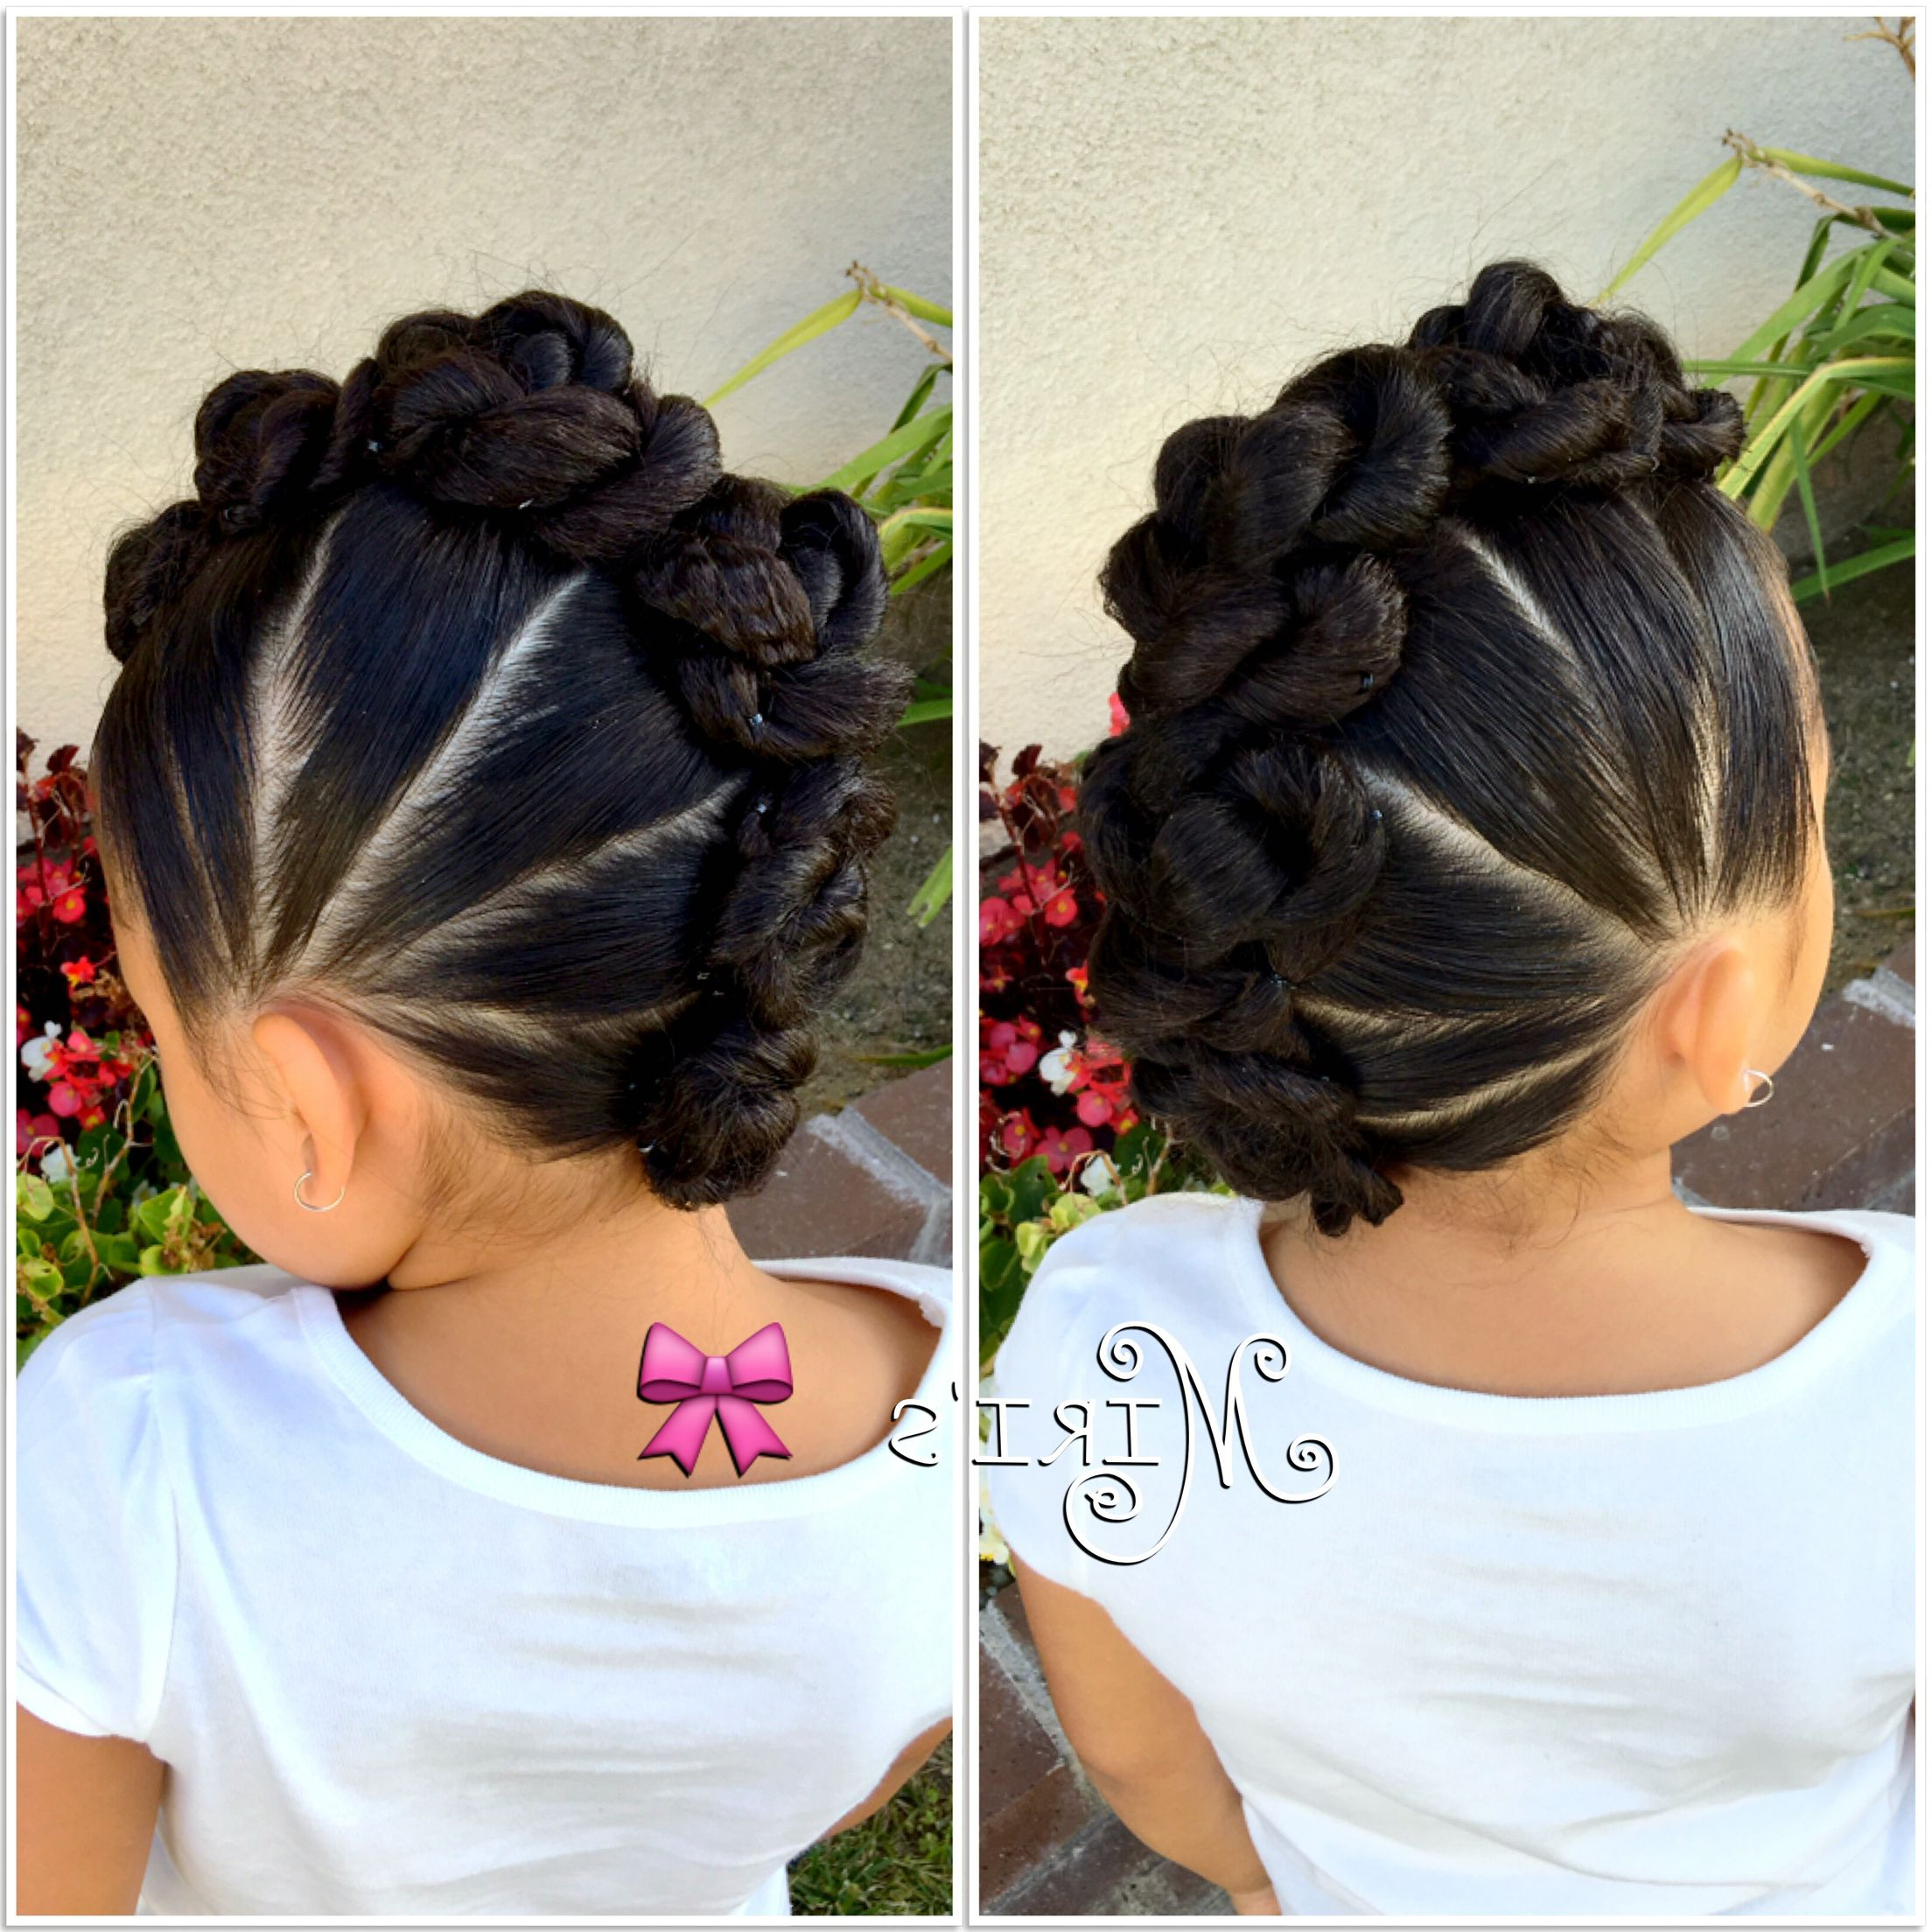 Mohawk With Twists Hair Style For Little Girls (View 6 of 20)